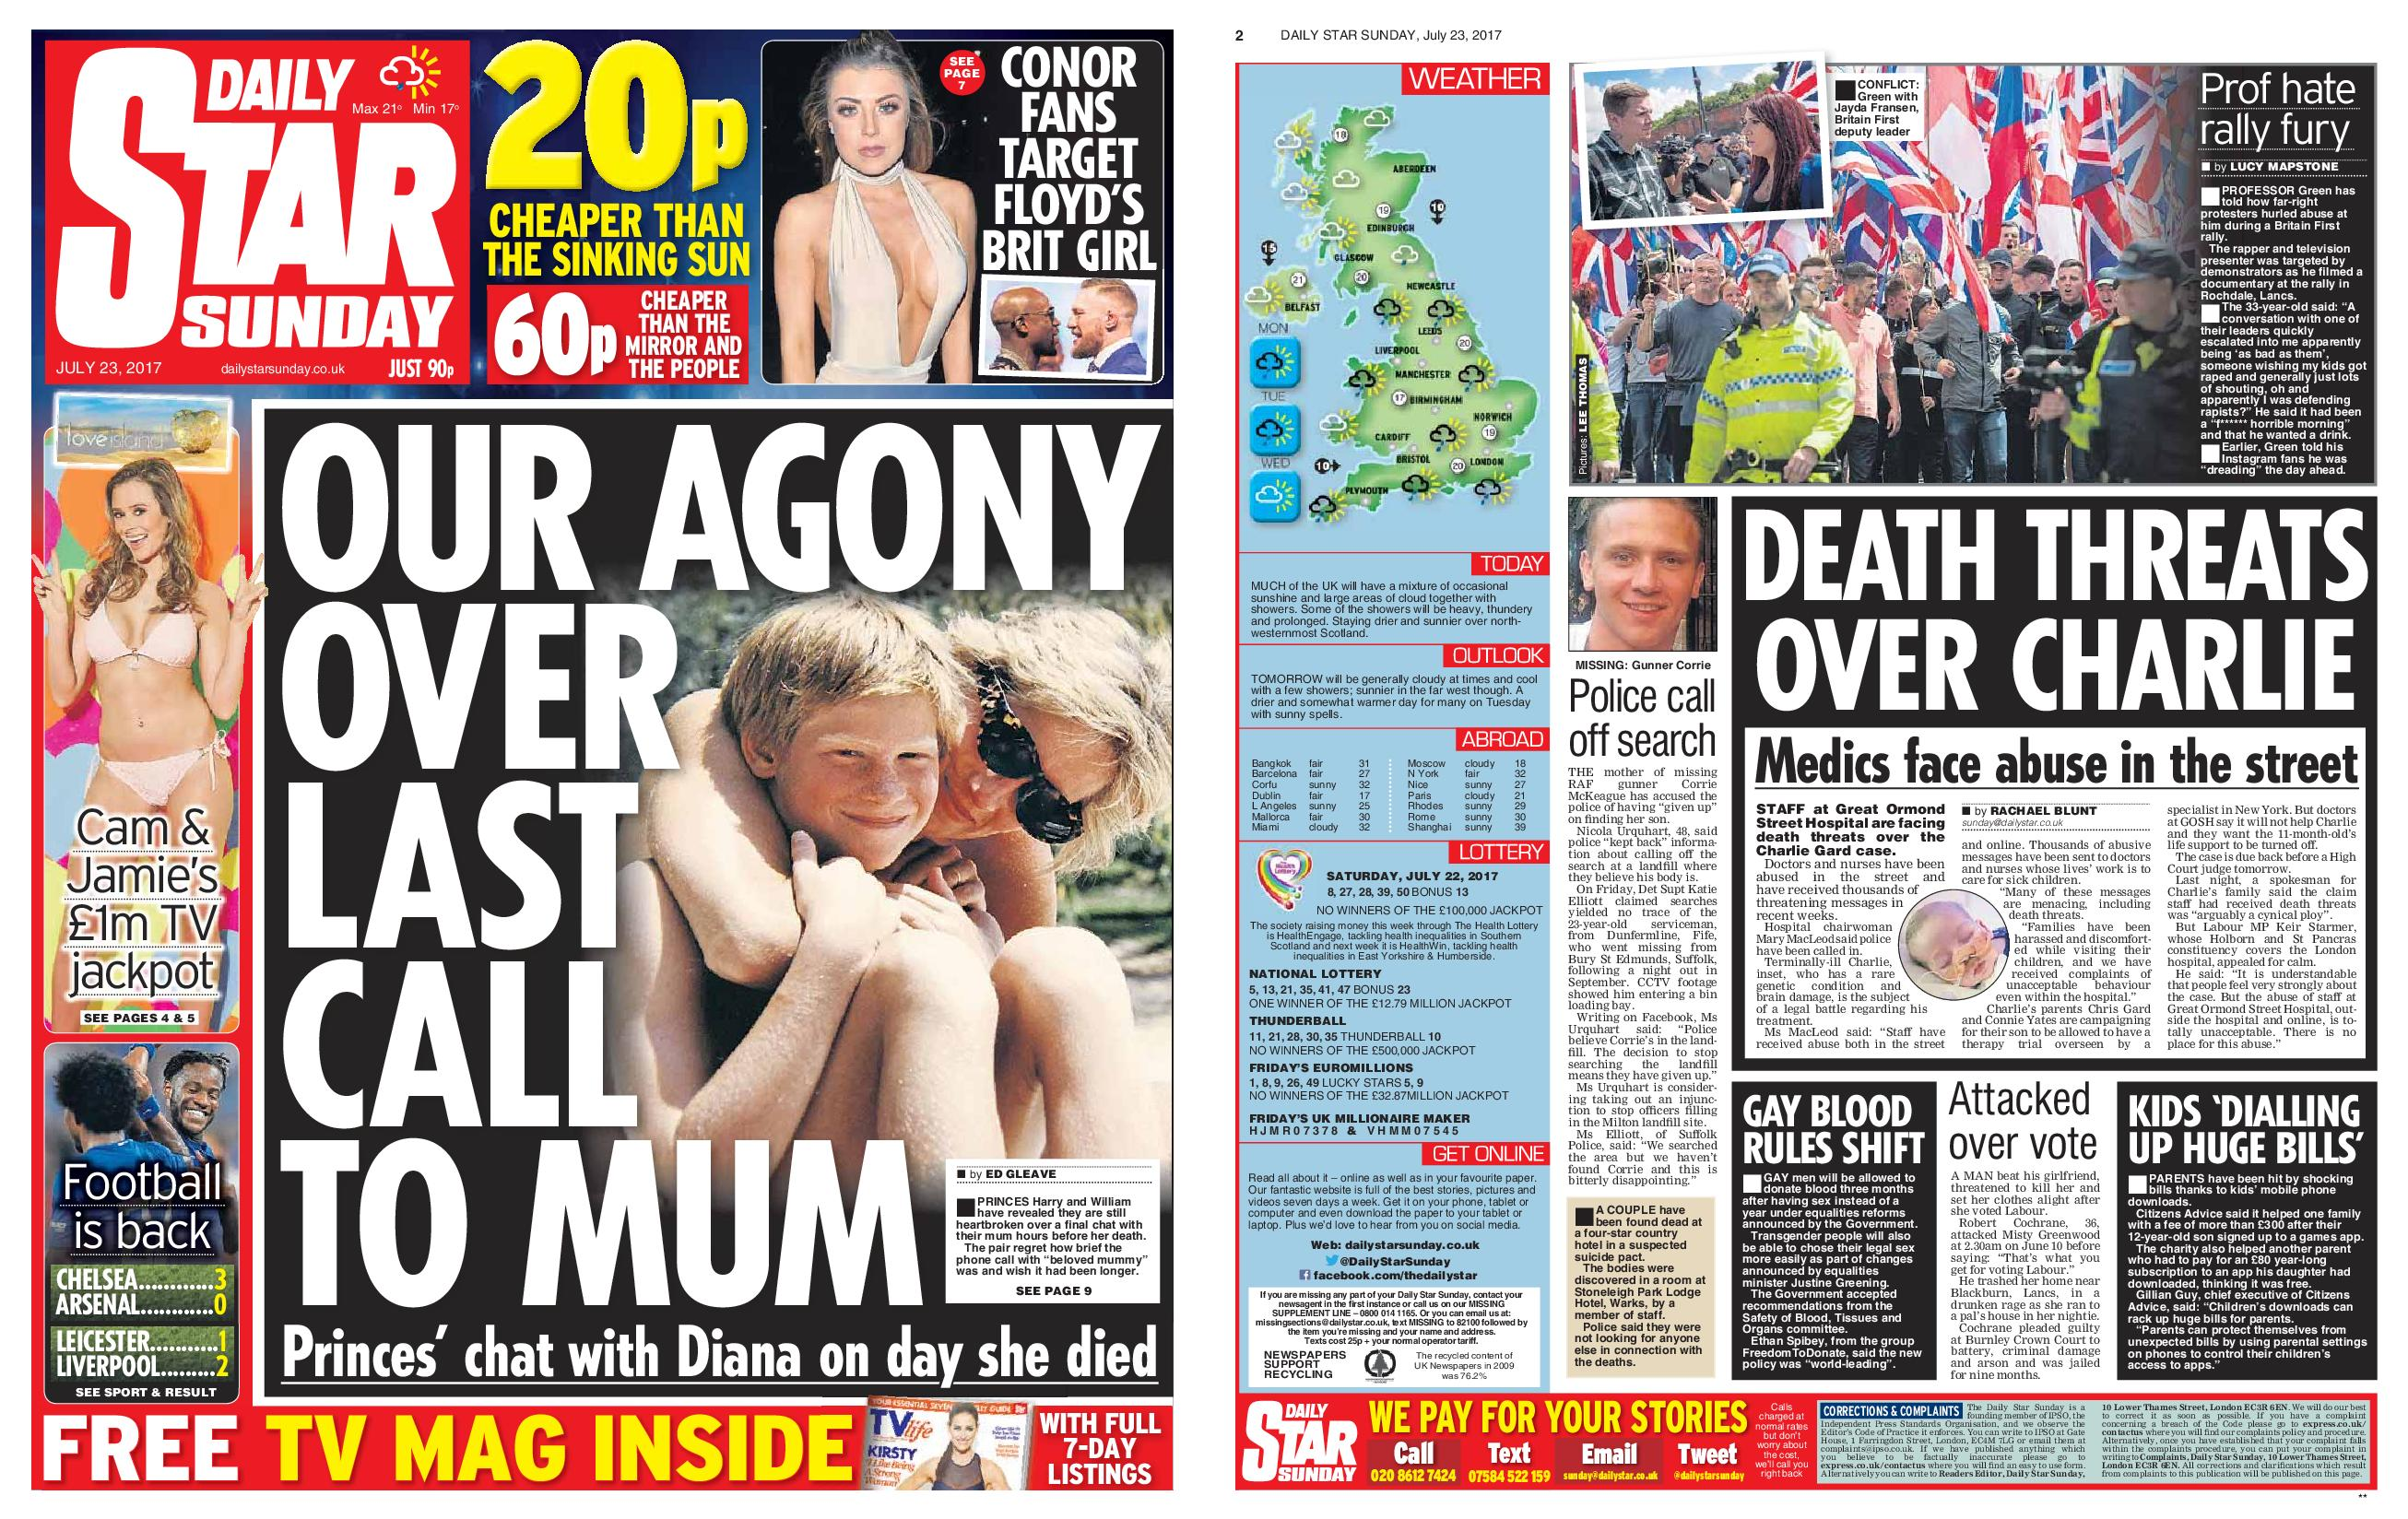 Daily Star July 23 2017